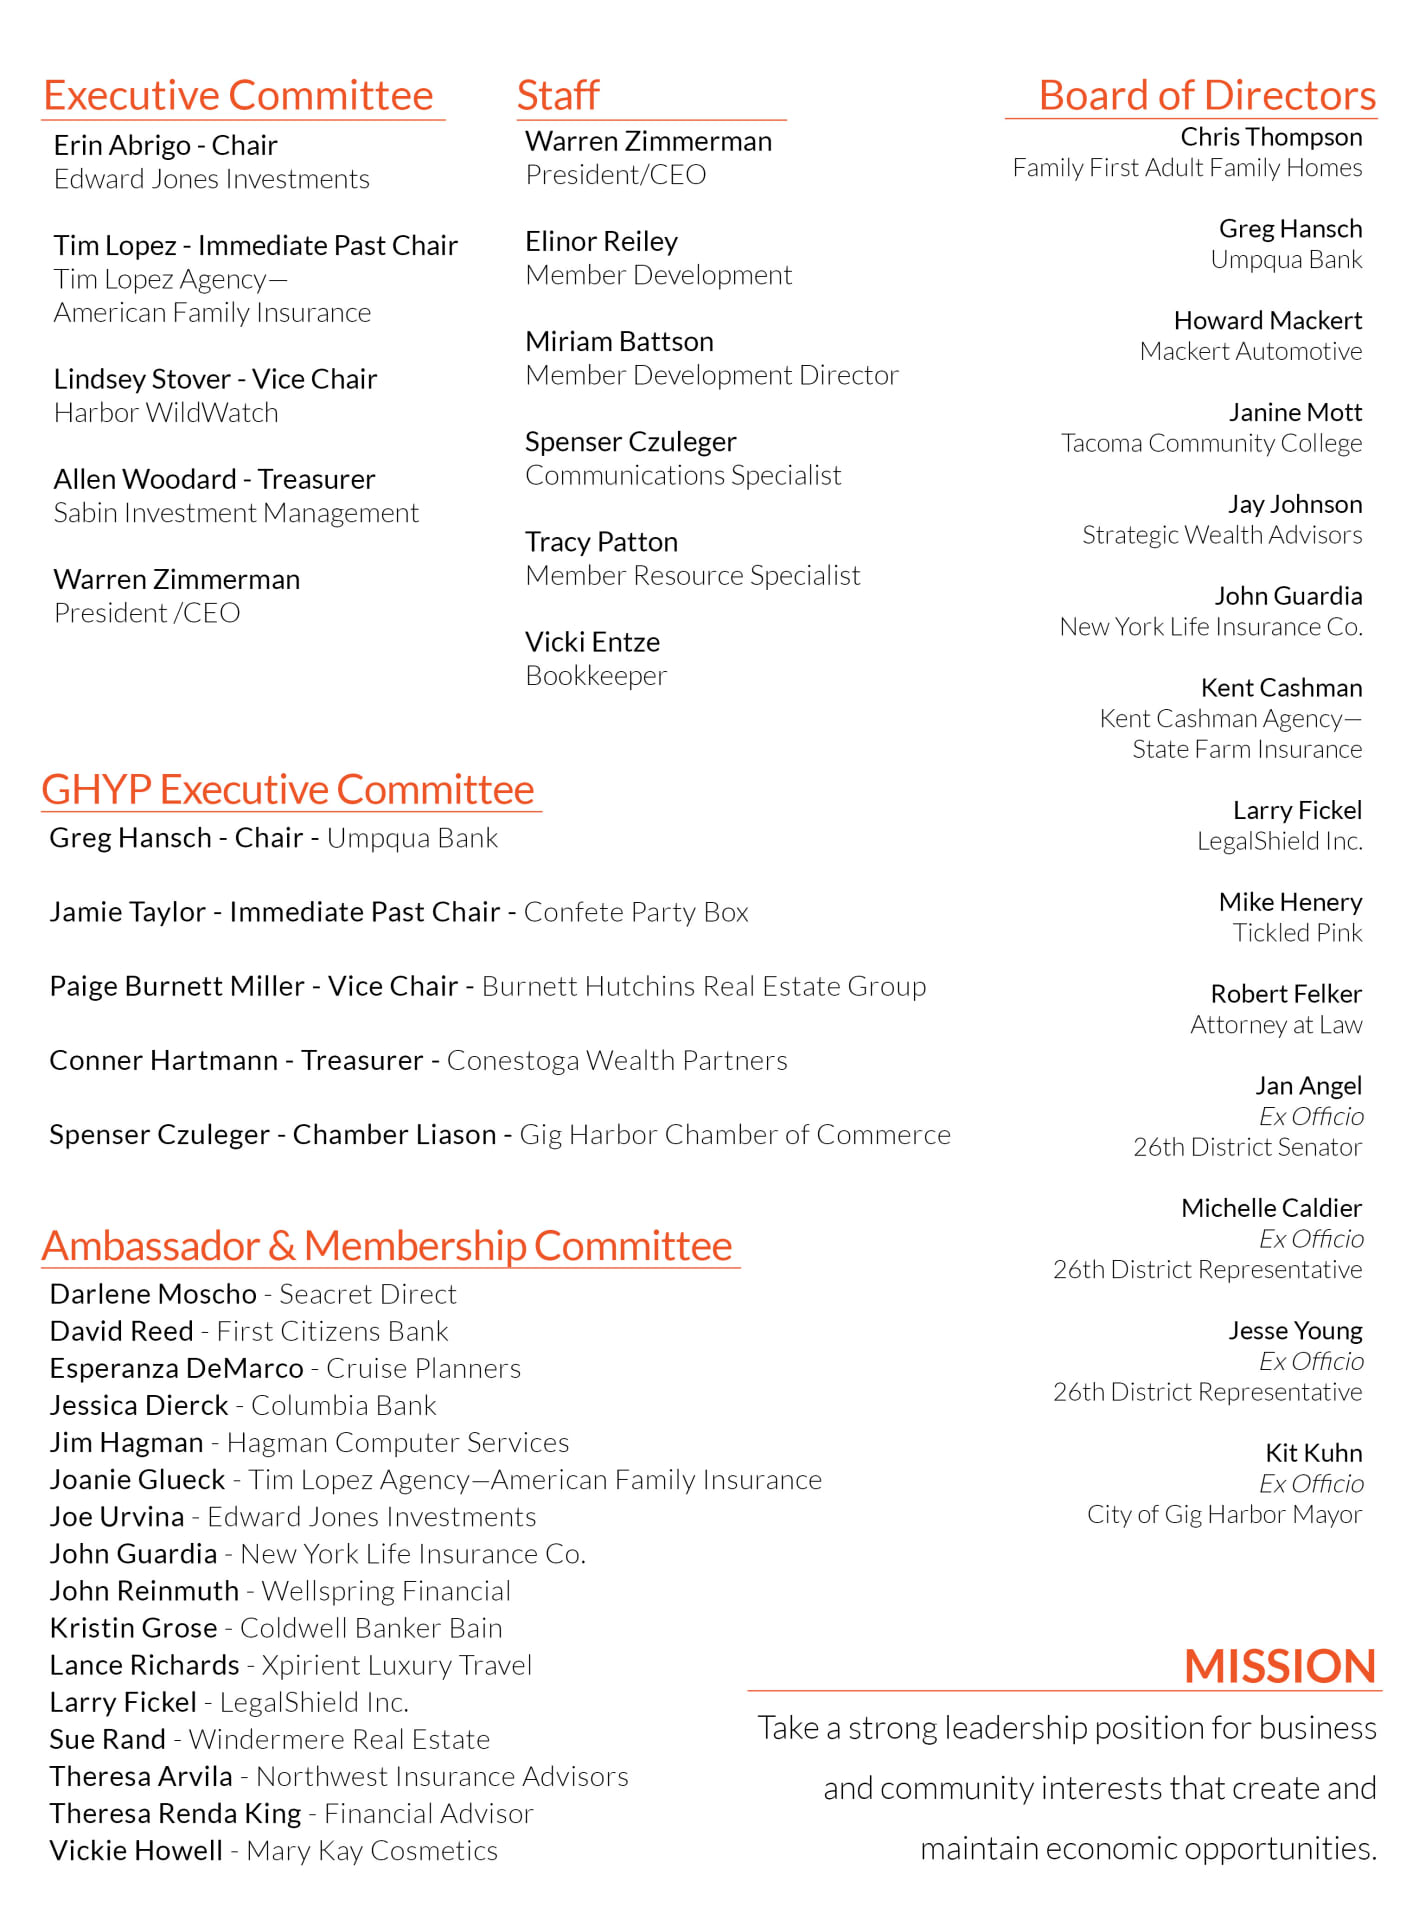 2018 Annual Report, Board of Directors, Staff, Ambassadors, and GHYP Executive Committee